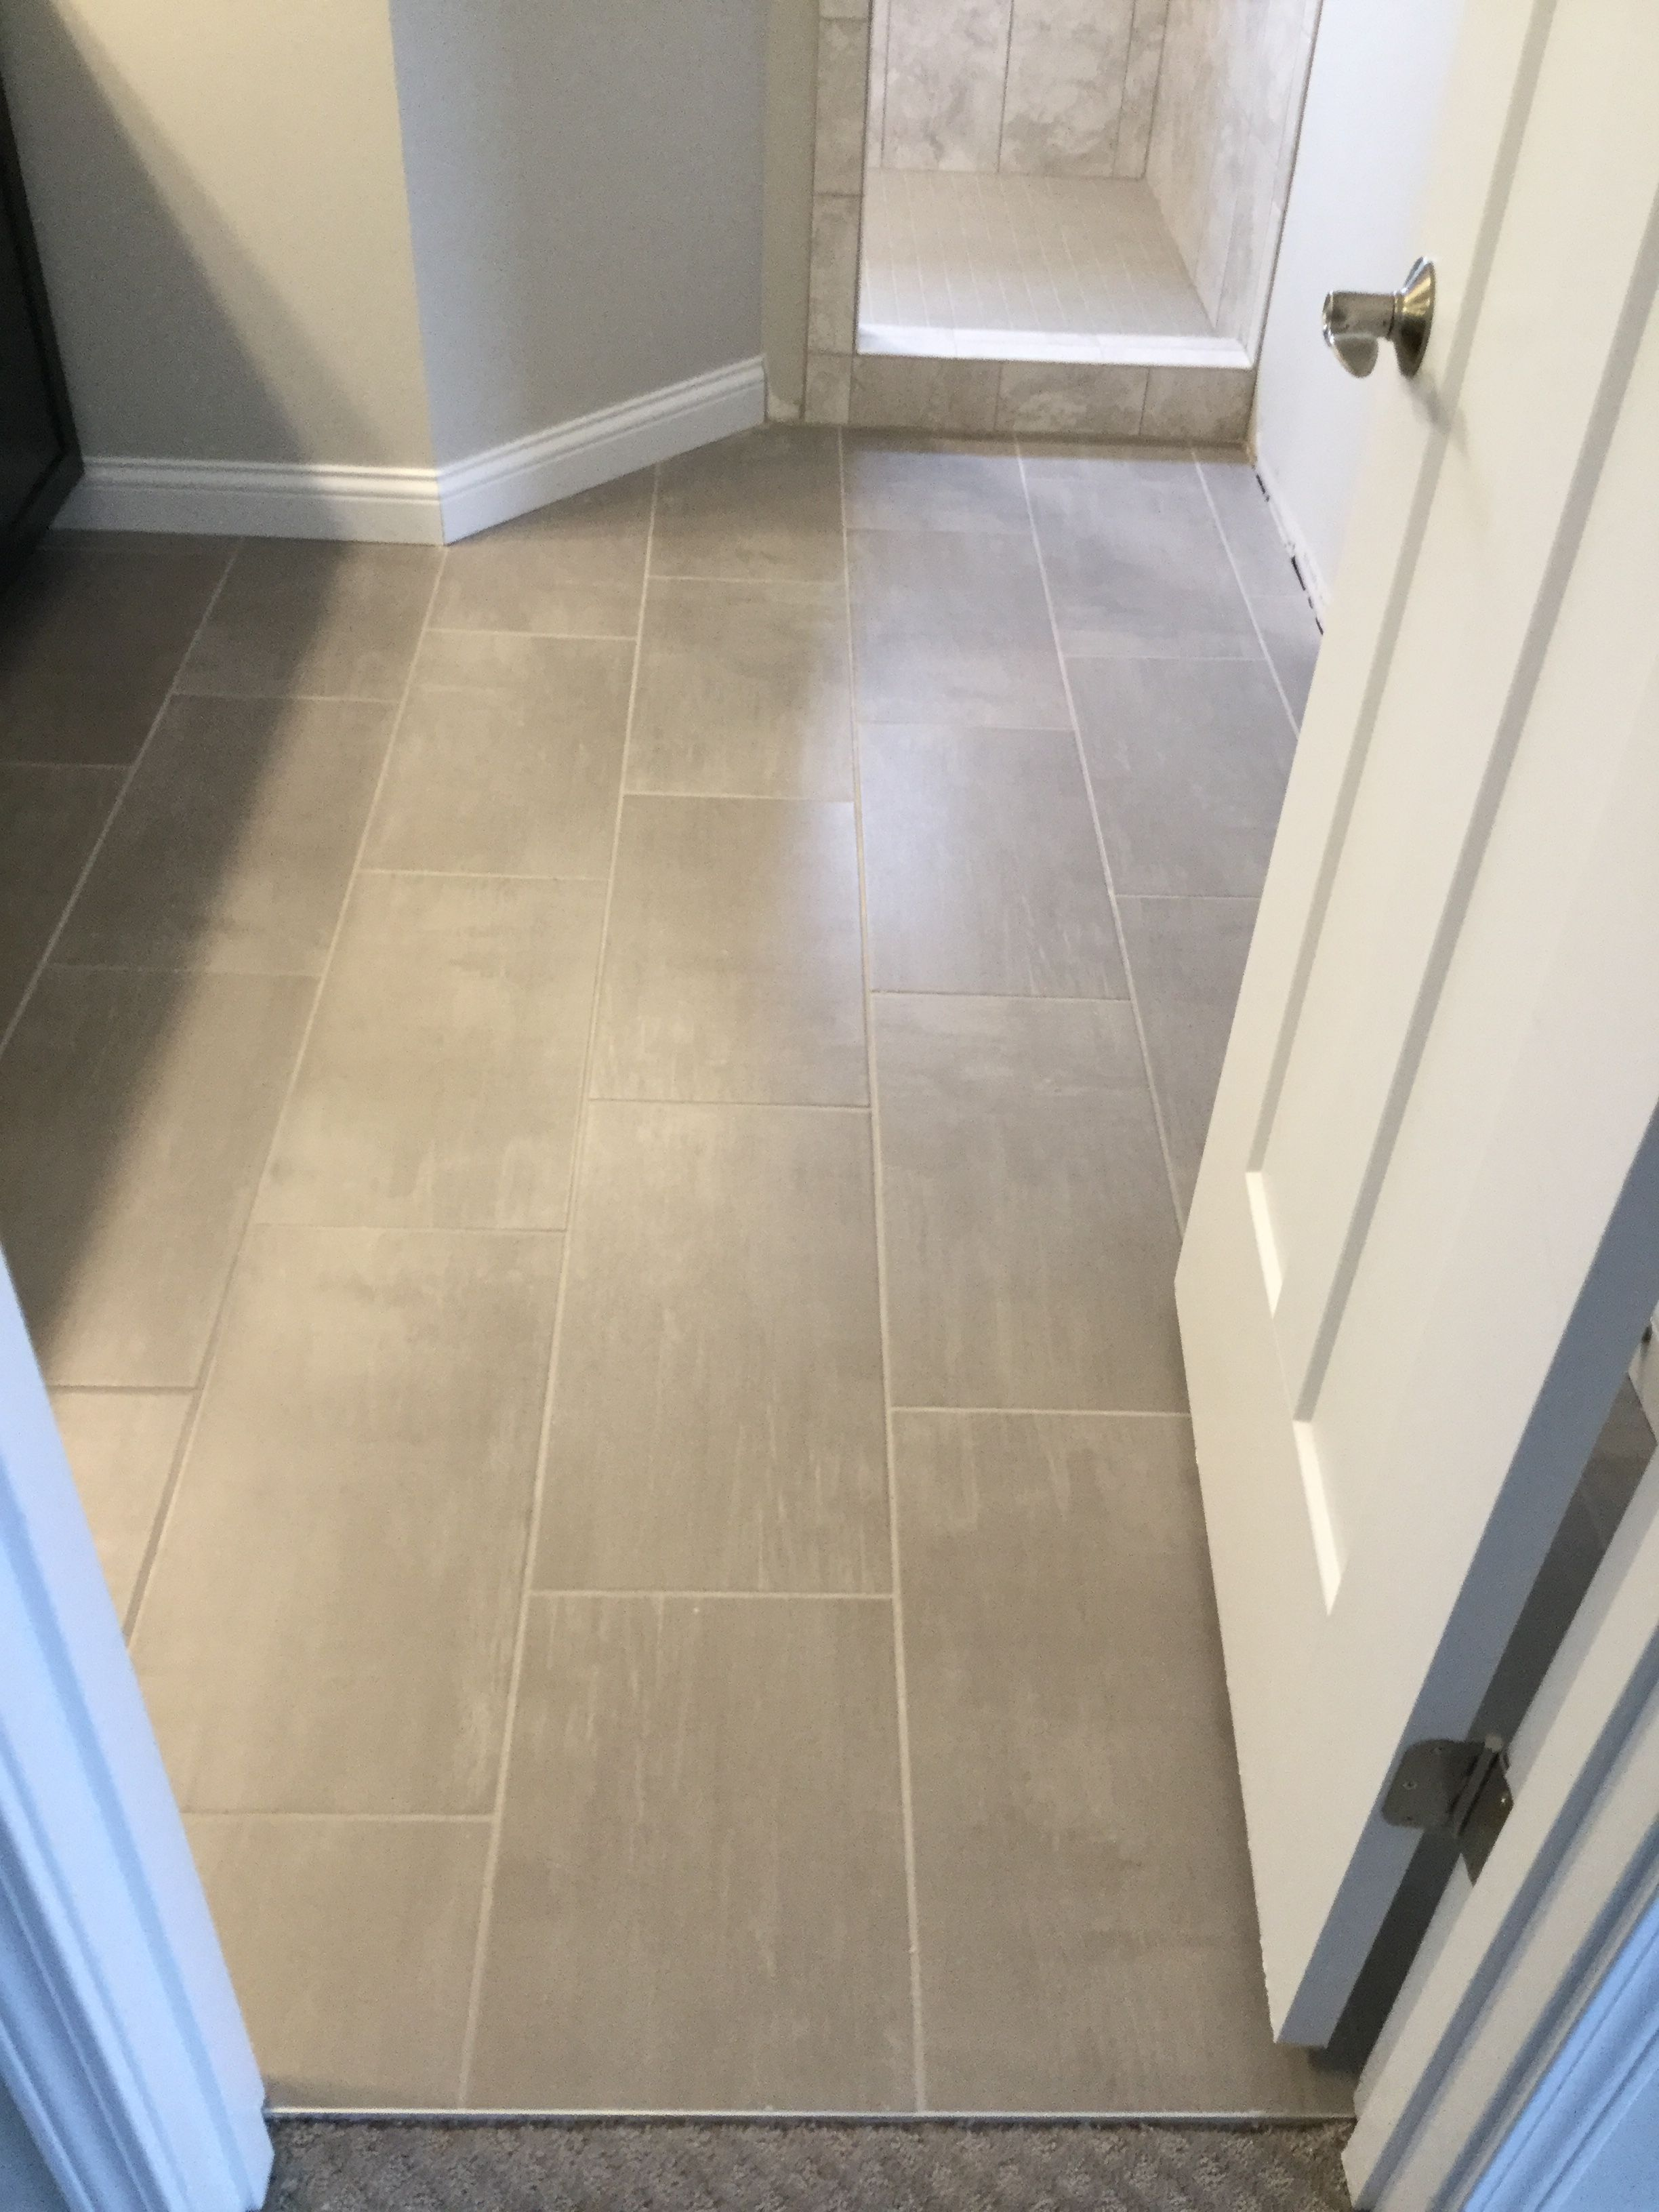 Skybridge 12x24 Gray Floor Tile Grey Flooring Grey Floor Tiles Tile Floor